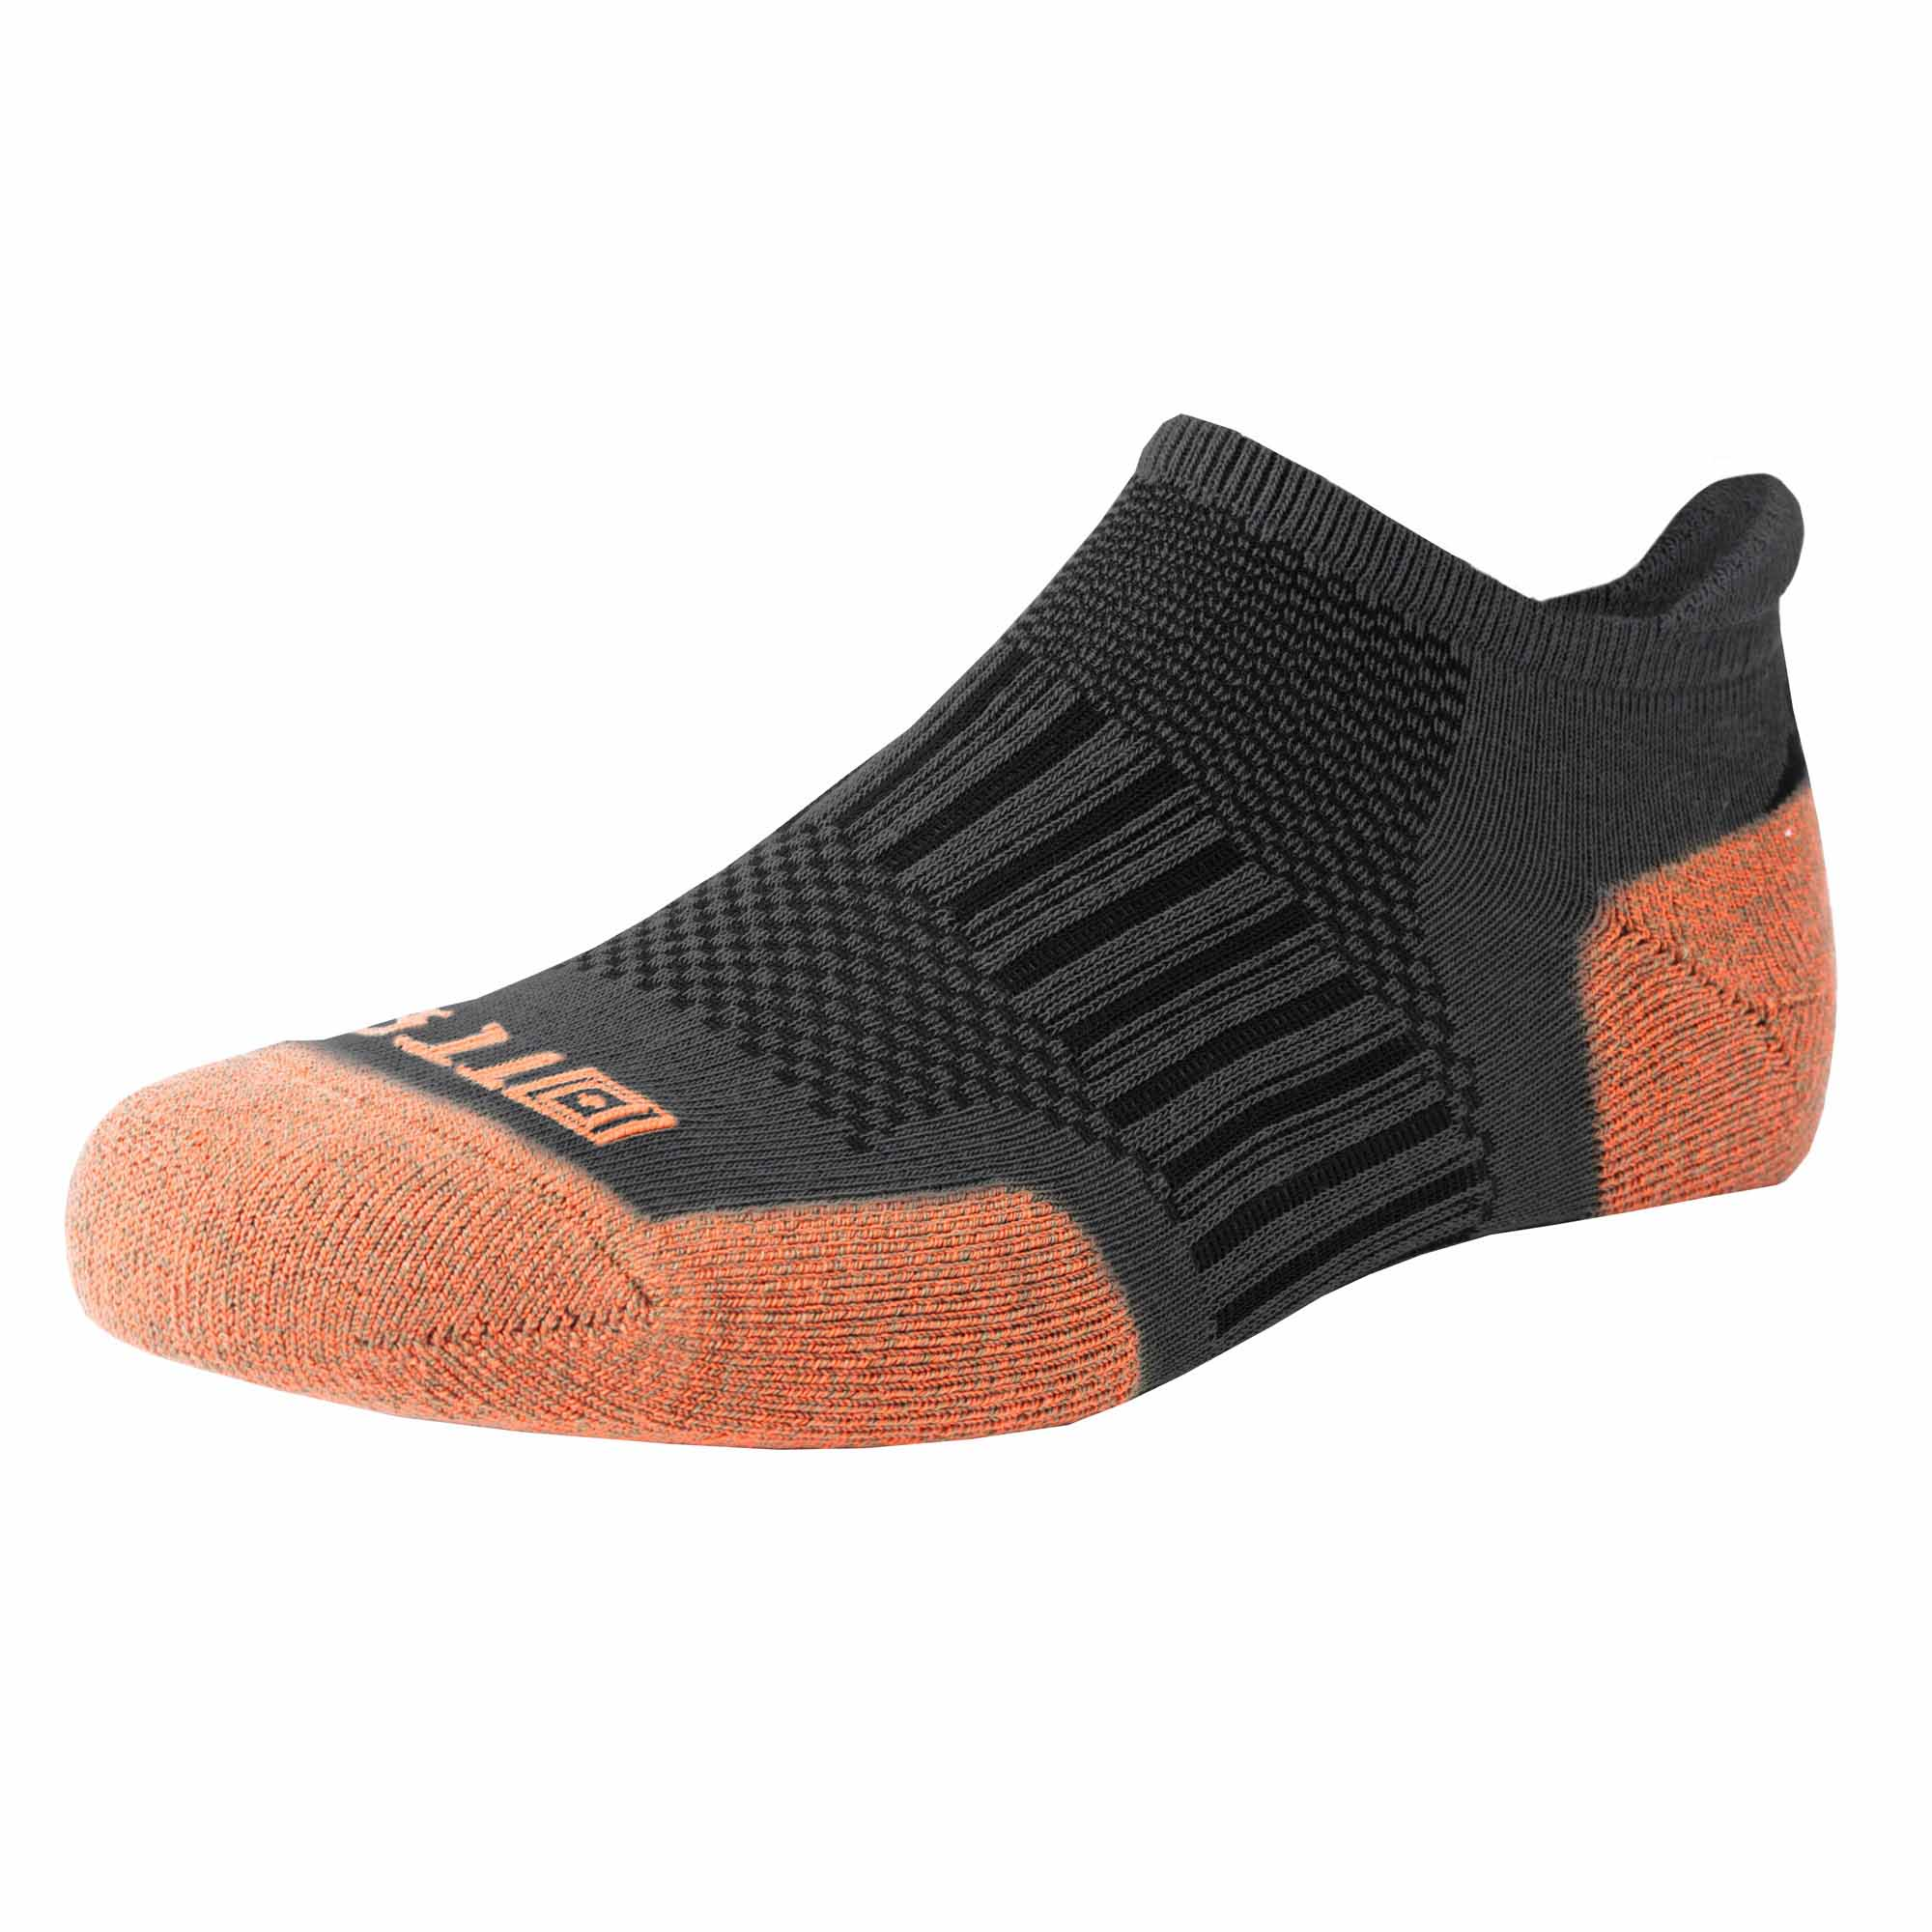 5.11 RECON® Ankle Sock from 5.11 Tactical (Gray;Orange;Multi)